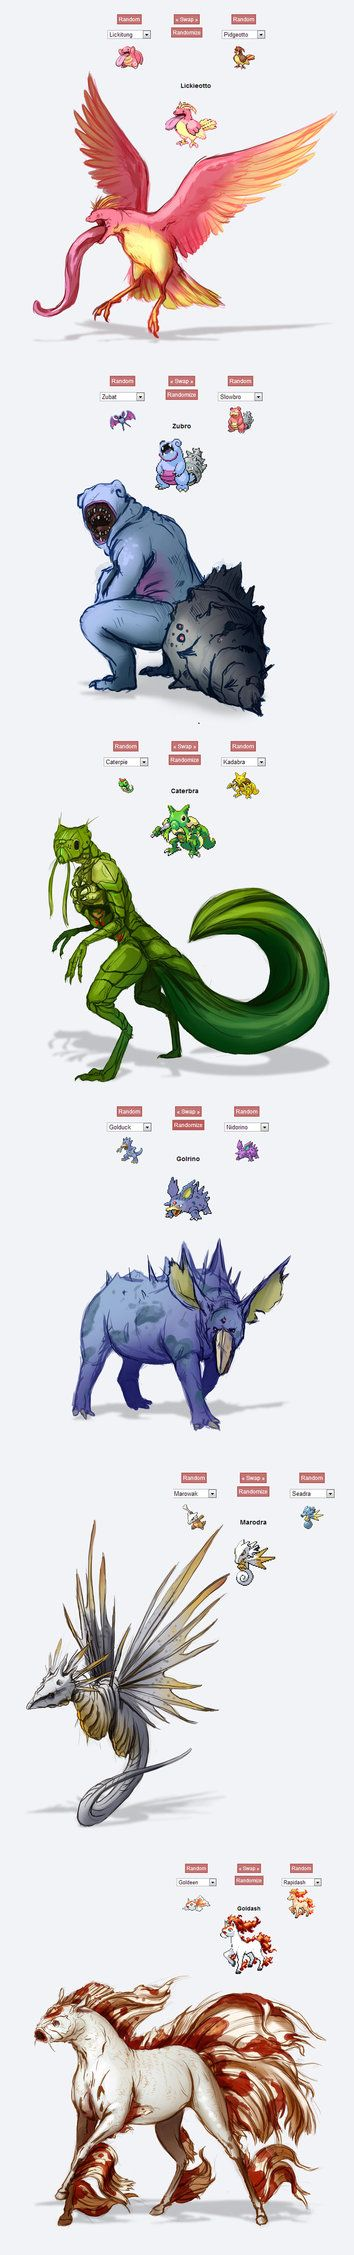 Pokemon fusions by silver5